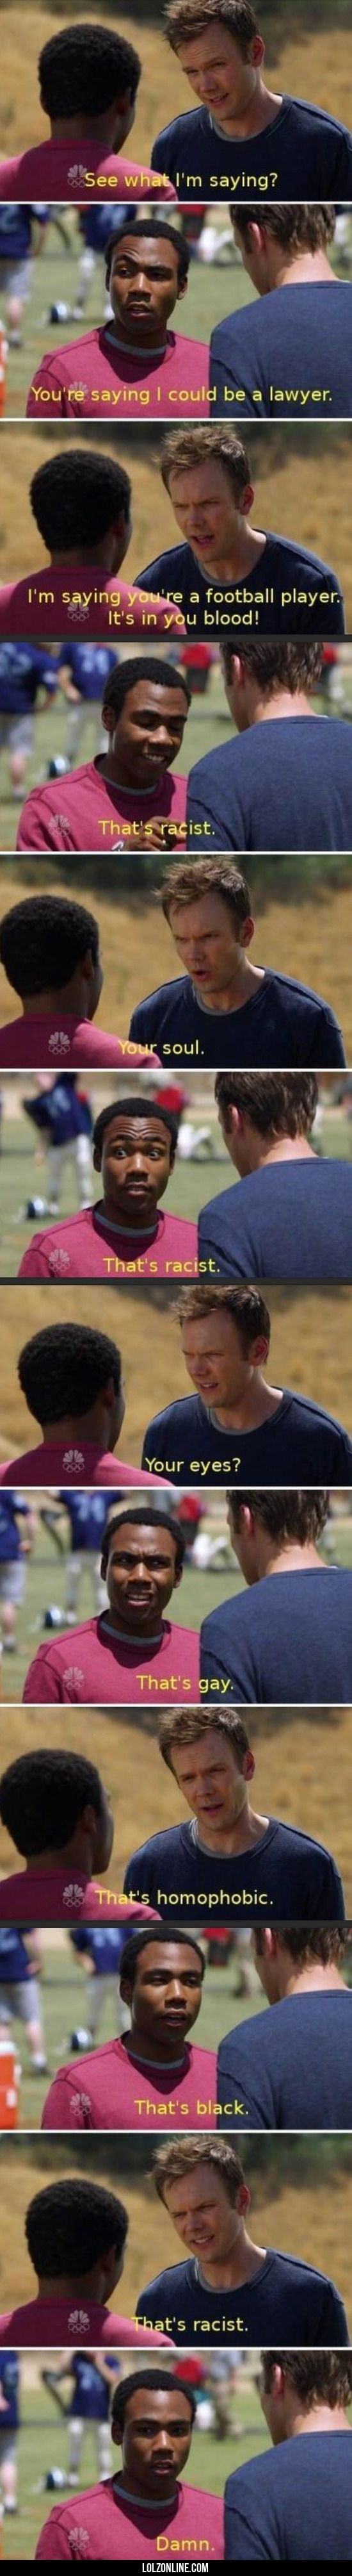 Being Politically Correct Is Hard#funny #lol #lolzonline